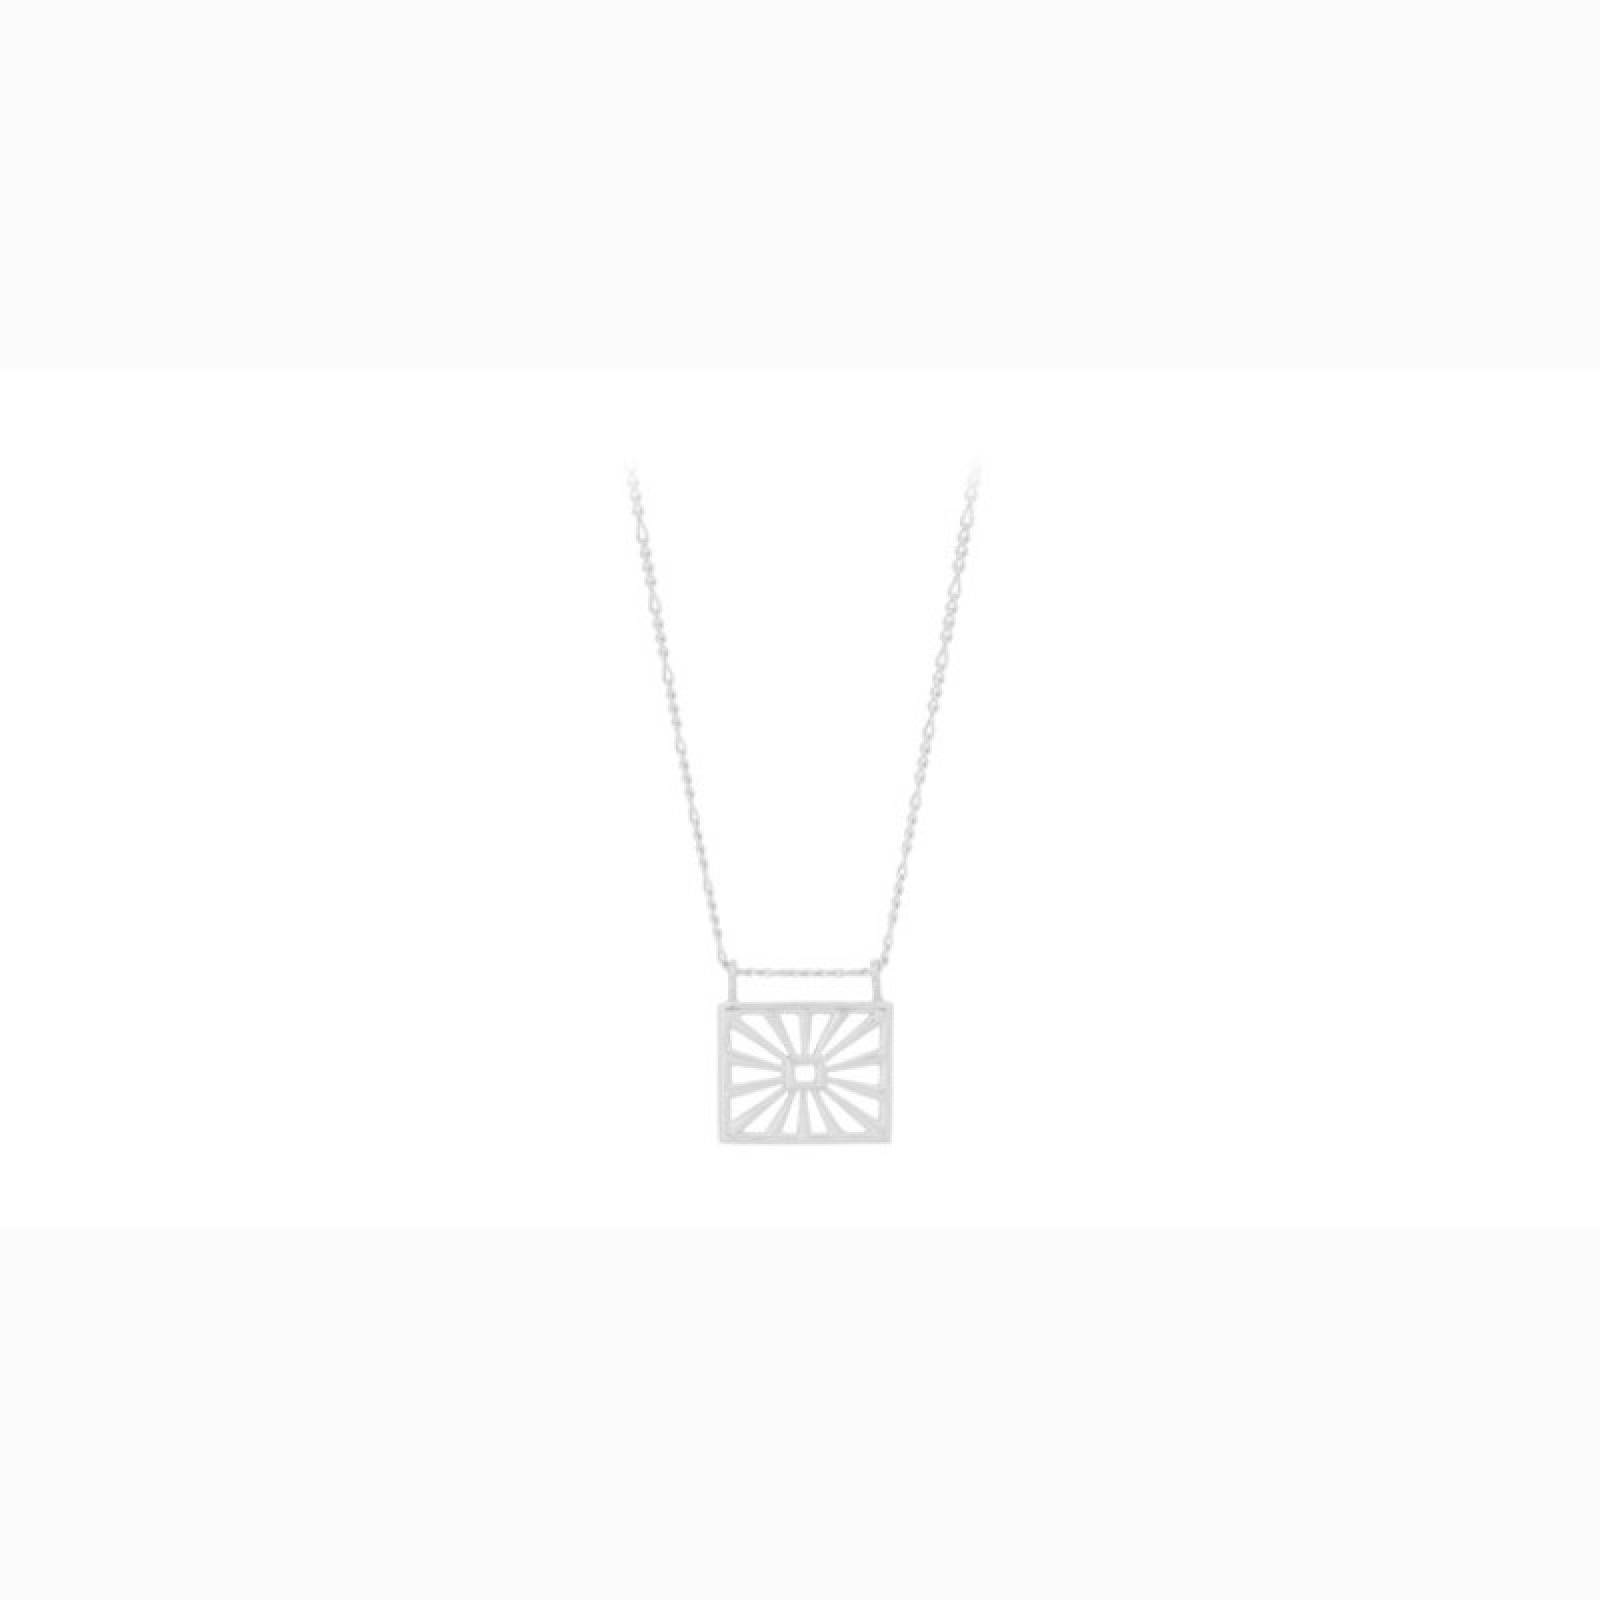 Sunrise Necklace In Silver By Pernillle Corydon